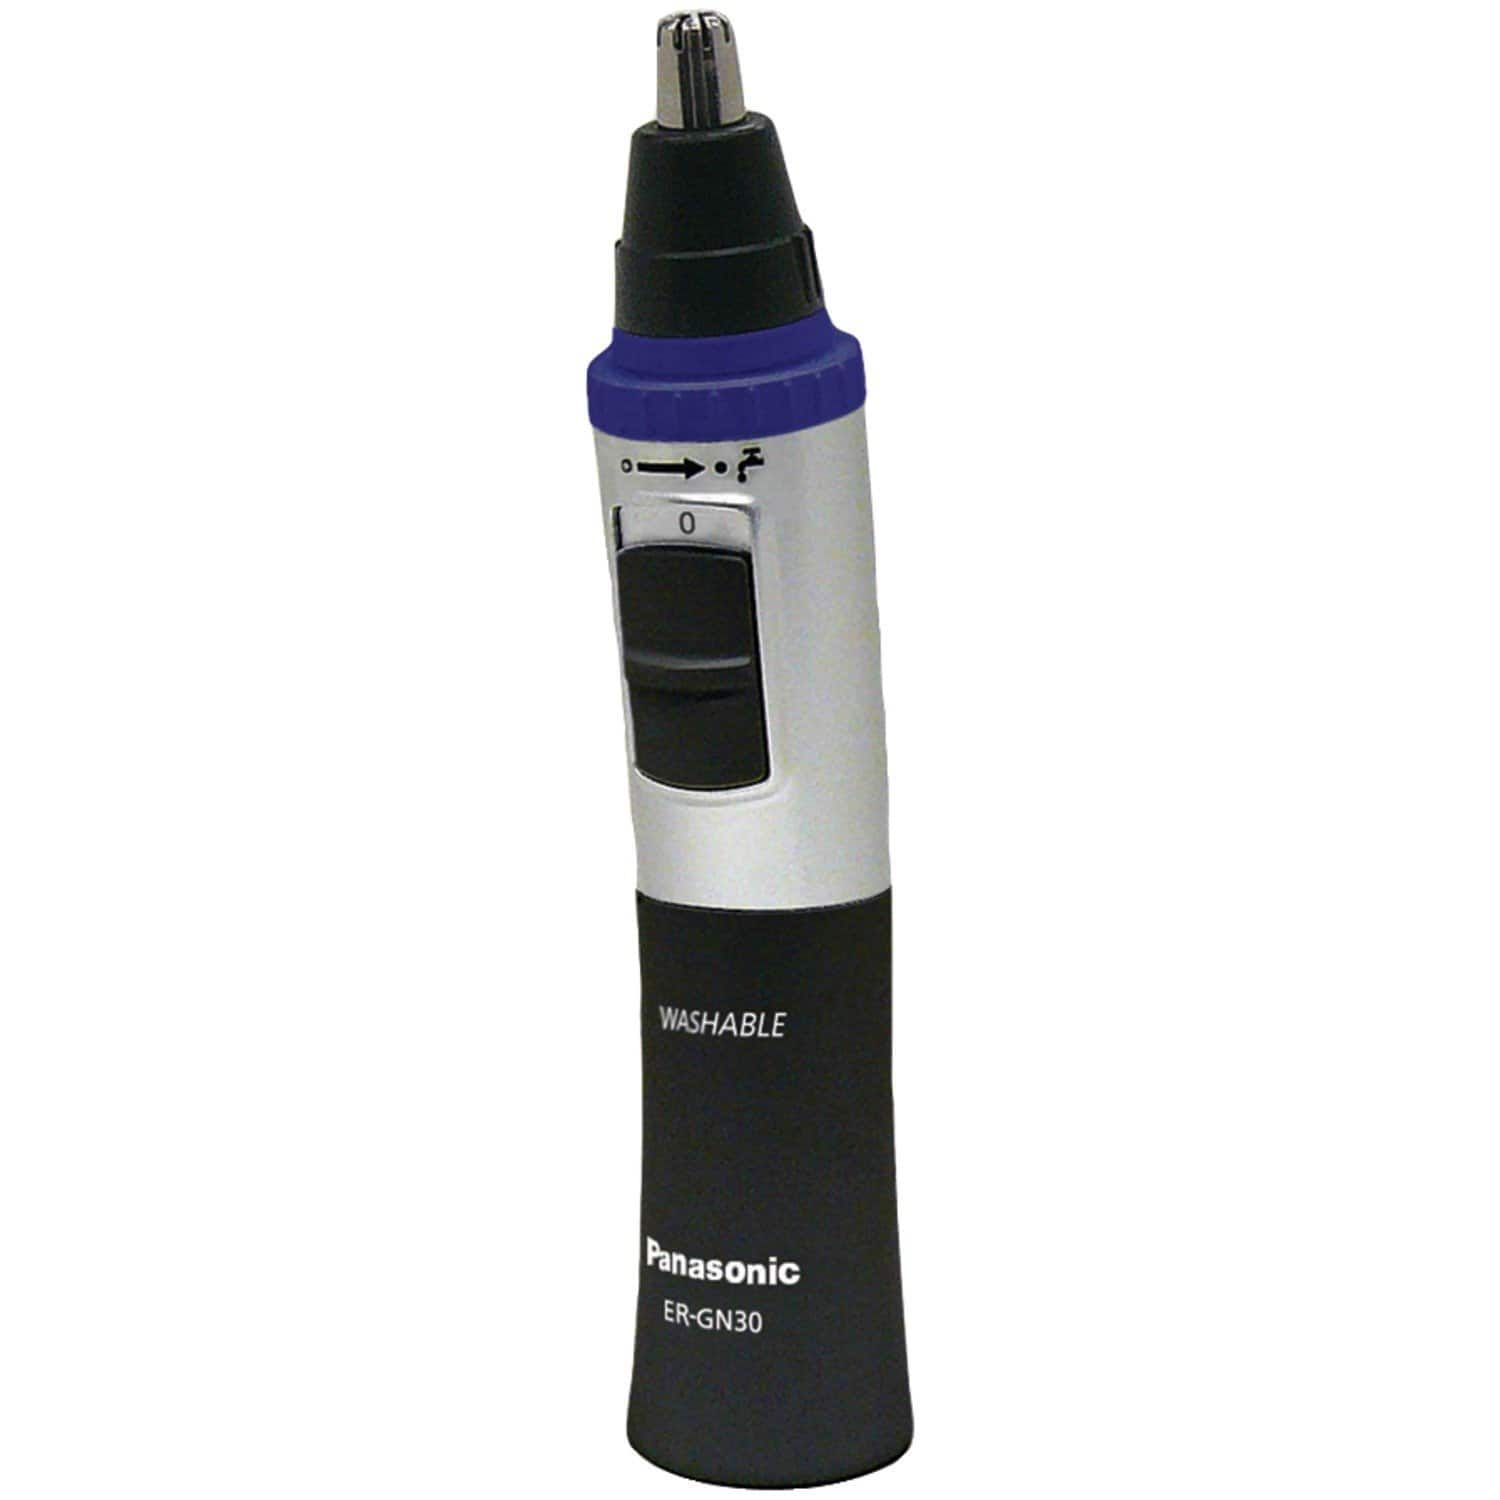 Panasonic Vortex Wet/Dry Facial, Nose, & Ear Hair Trimmer  $10 + Free Shipping